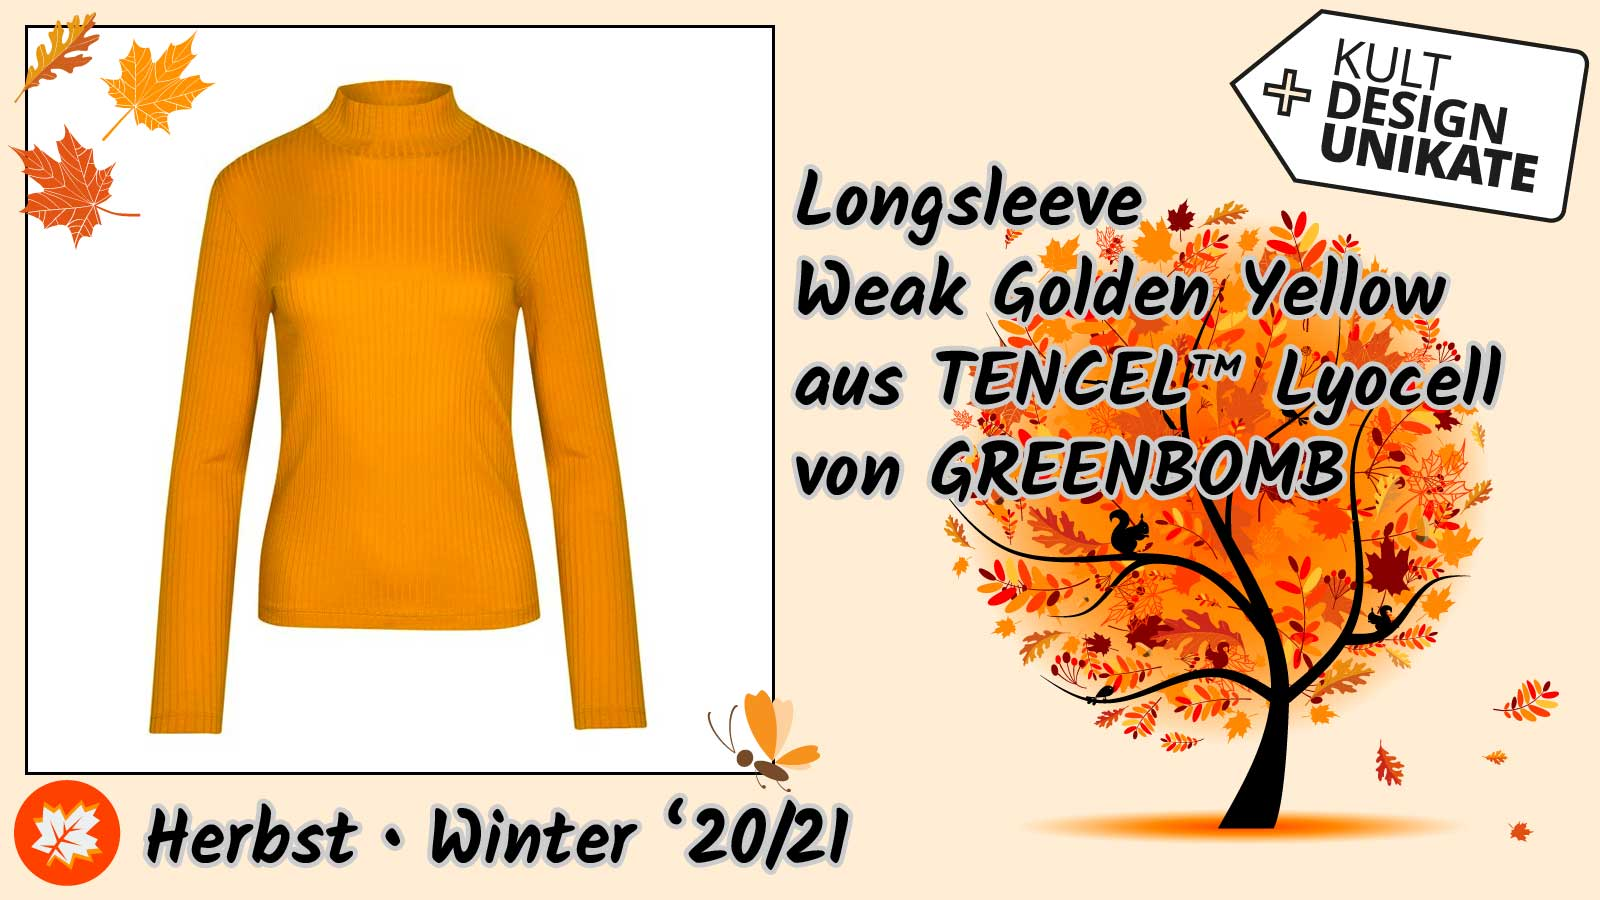 greenbomb-Longsleve-Weak-Golden-Yellow